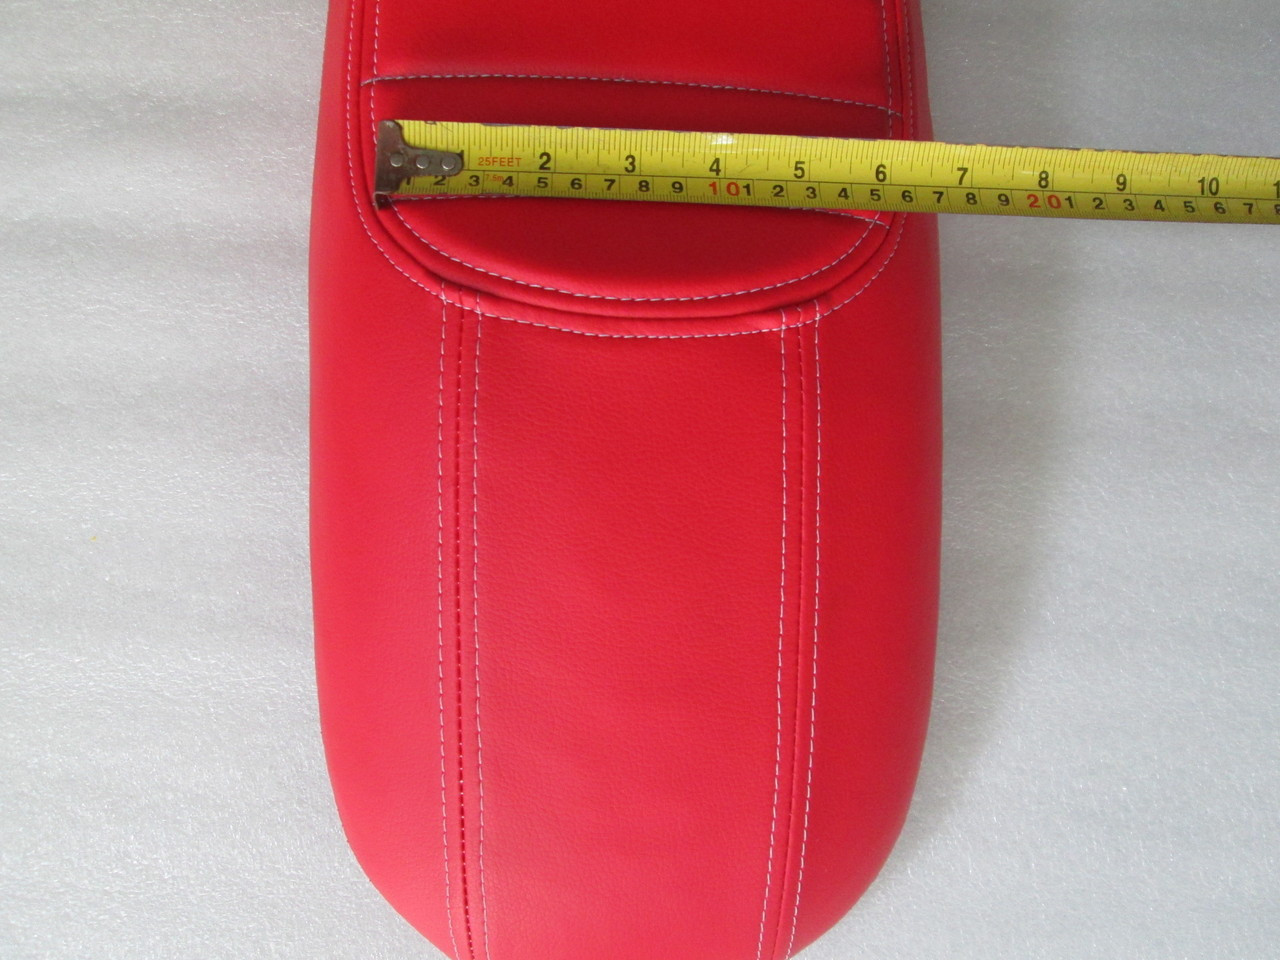 1978 - 1981 Honda CX500 Deluxe Standard or CX400 Classic Cafe Racer Seat with modified seat pan *RED* #4156